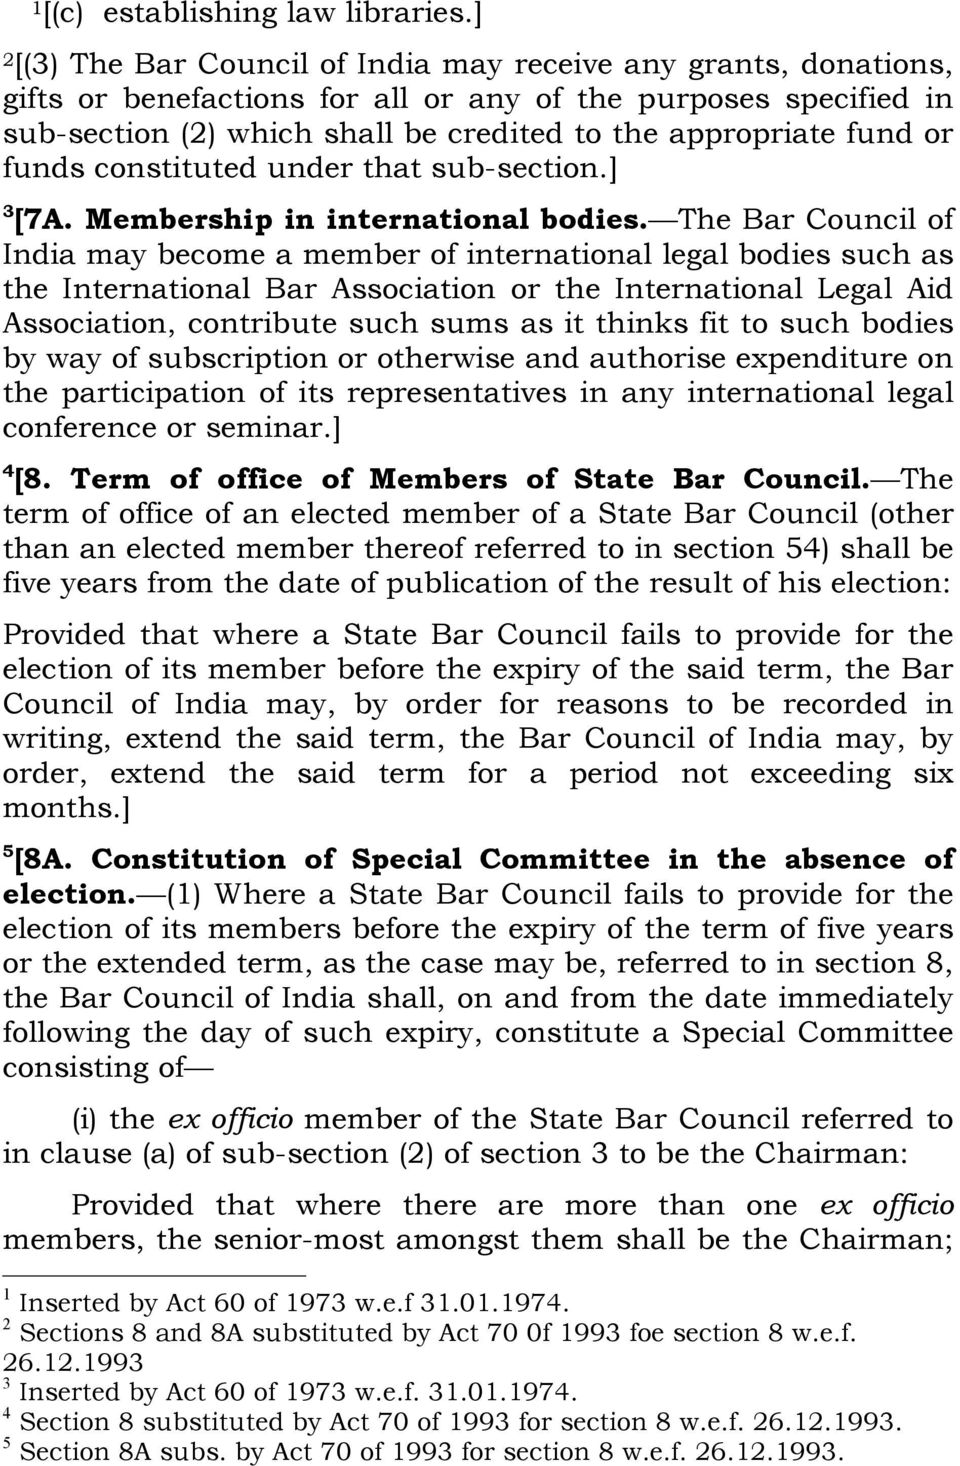 or funds constituted under that sub-section.] 3 [7A. Membership in international bodies.